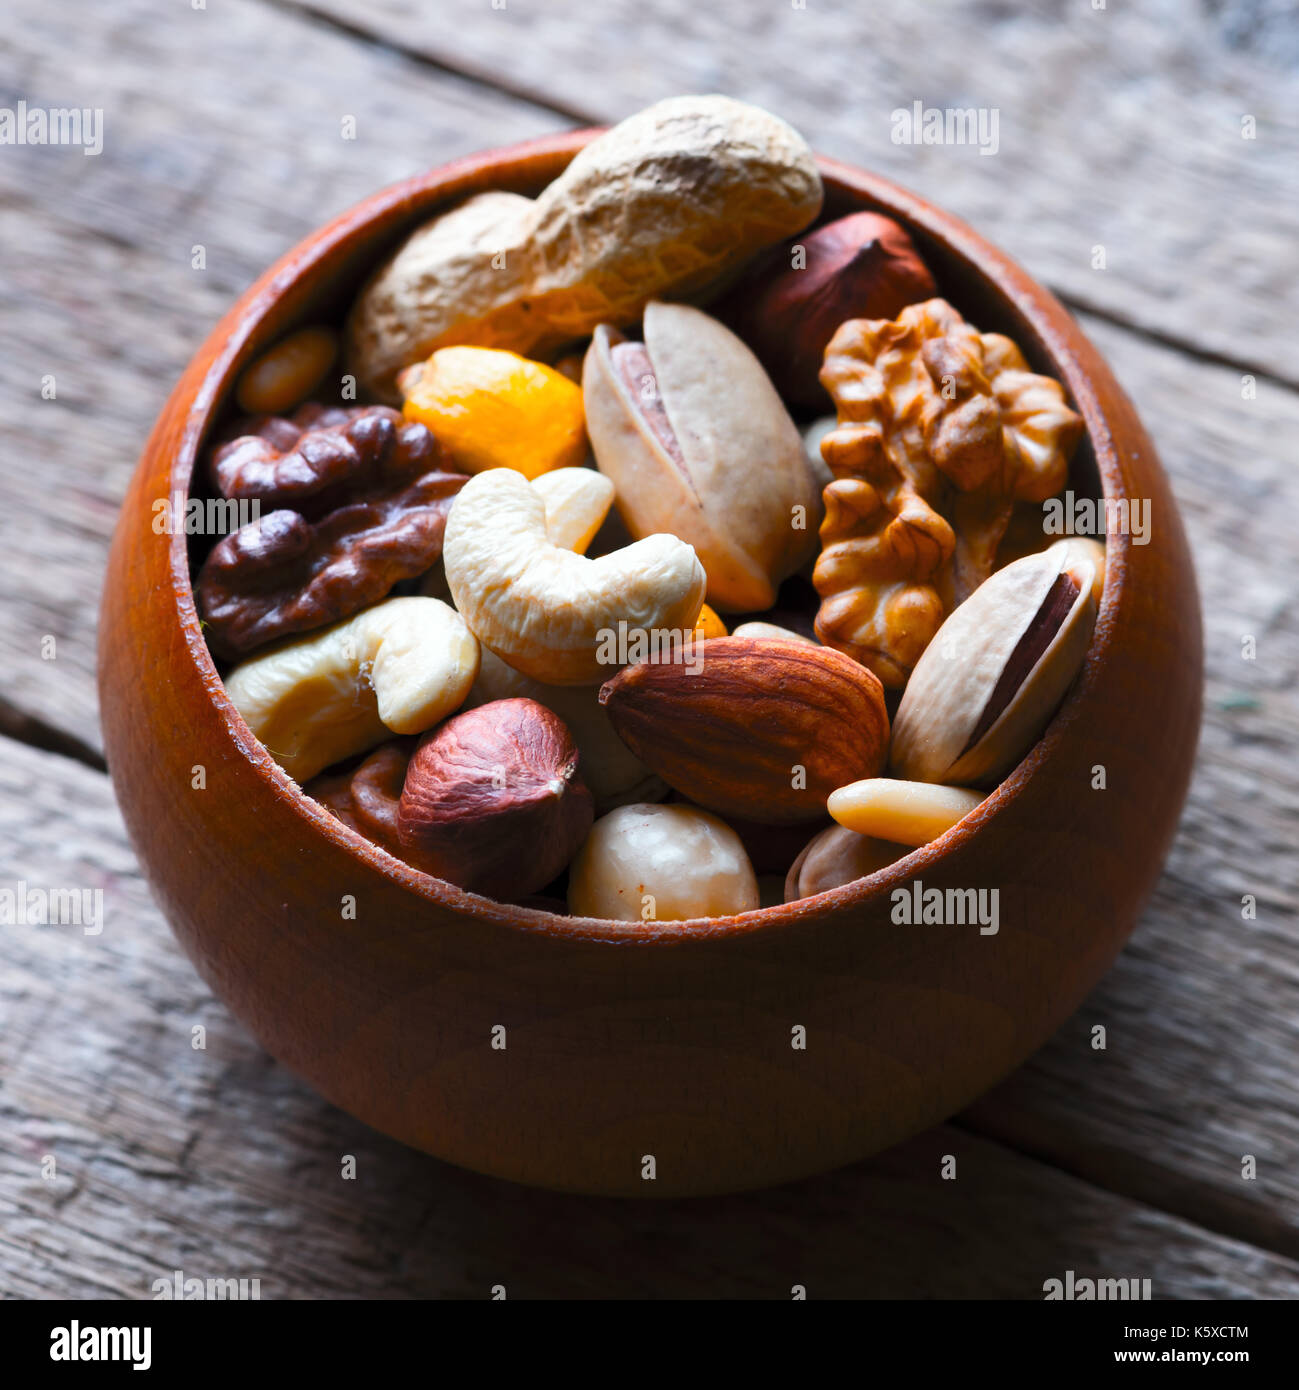 Mixed nuts in wooden bowl Stock Photo